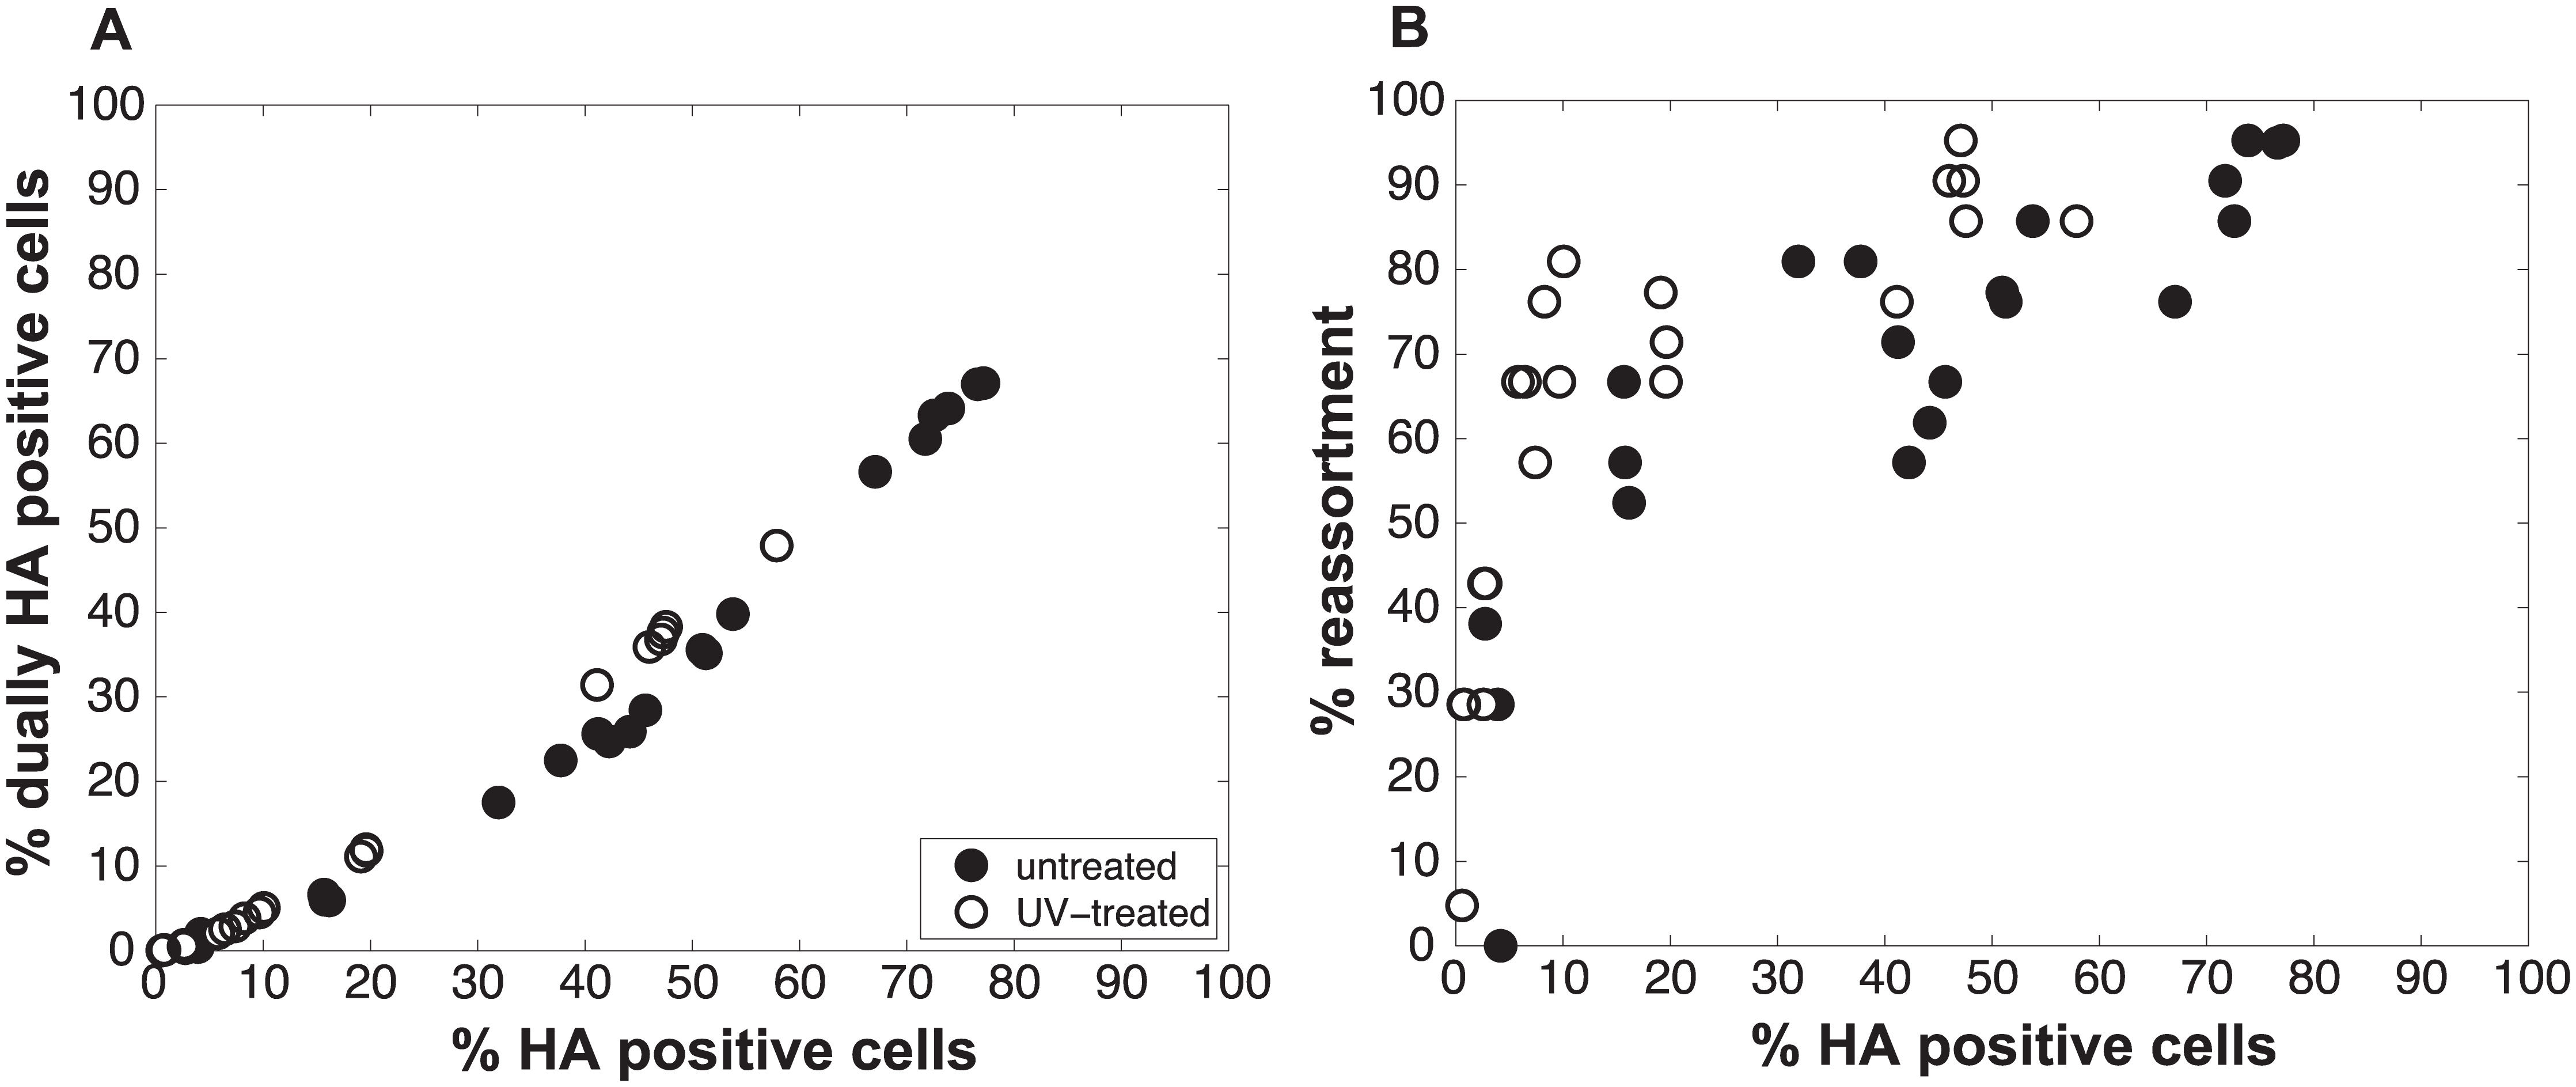 Increasing semi-infectious particle content by UV irradiation of virus stocks augments observed % reassortment.